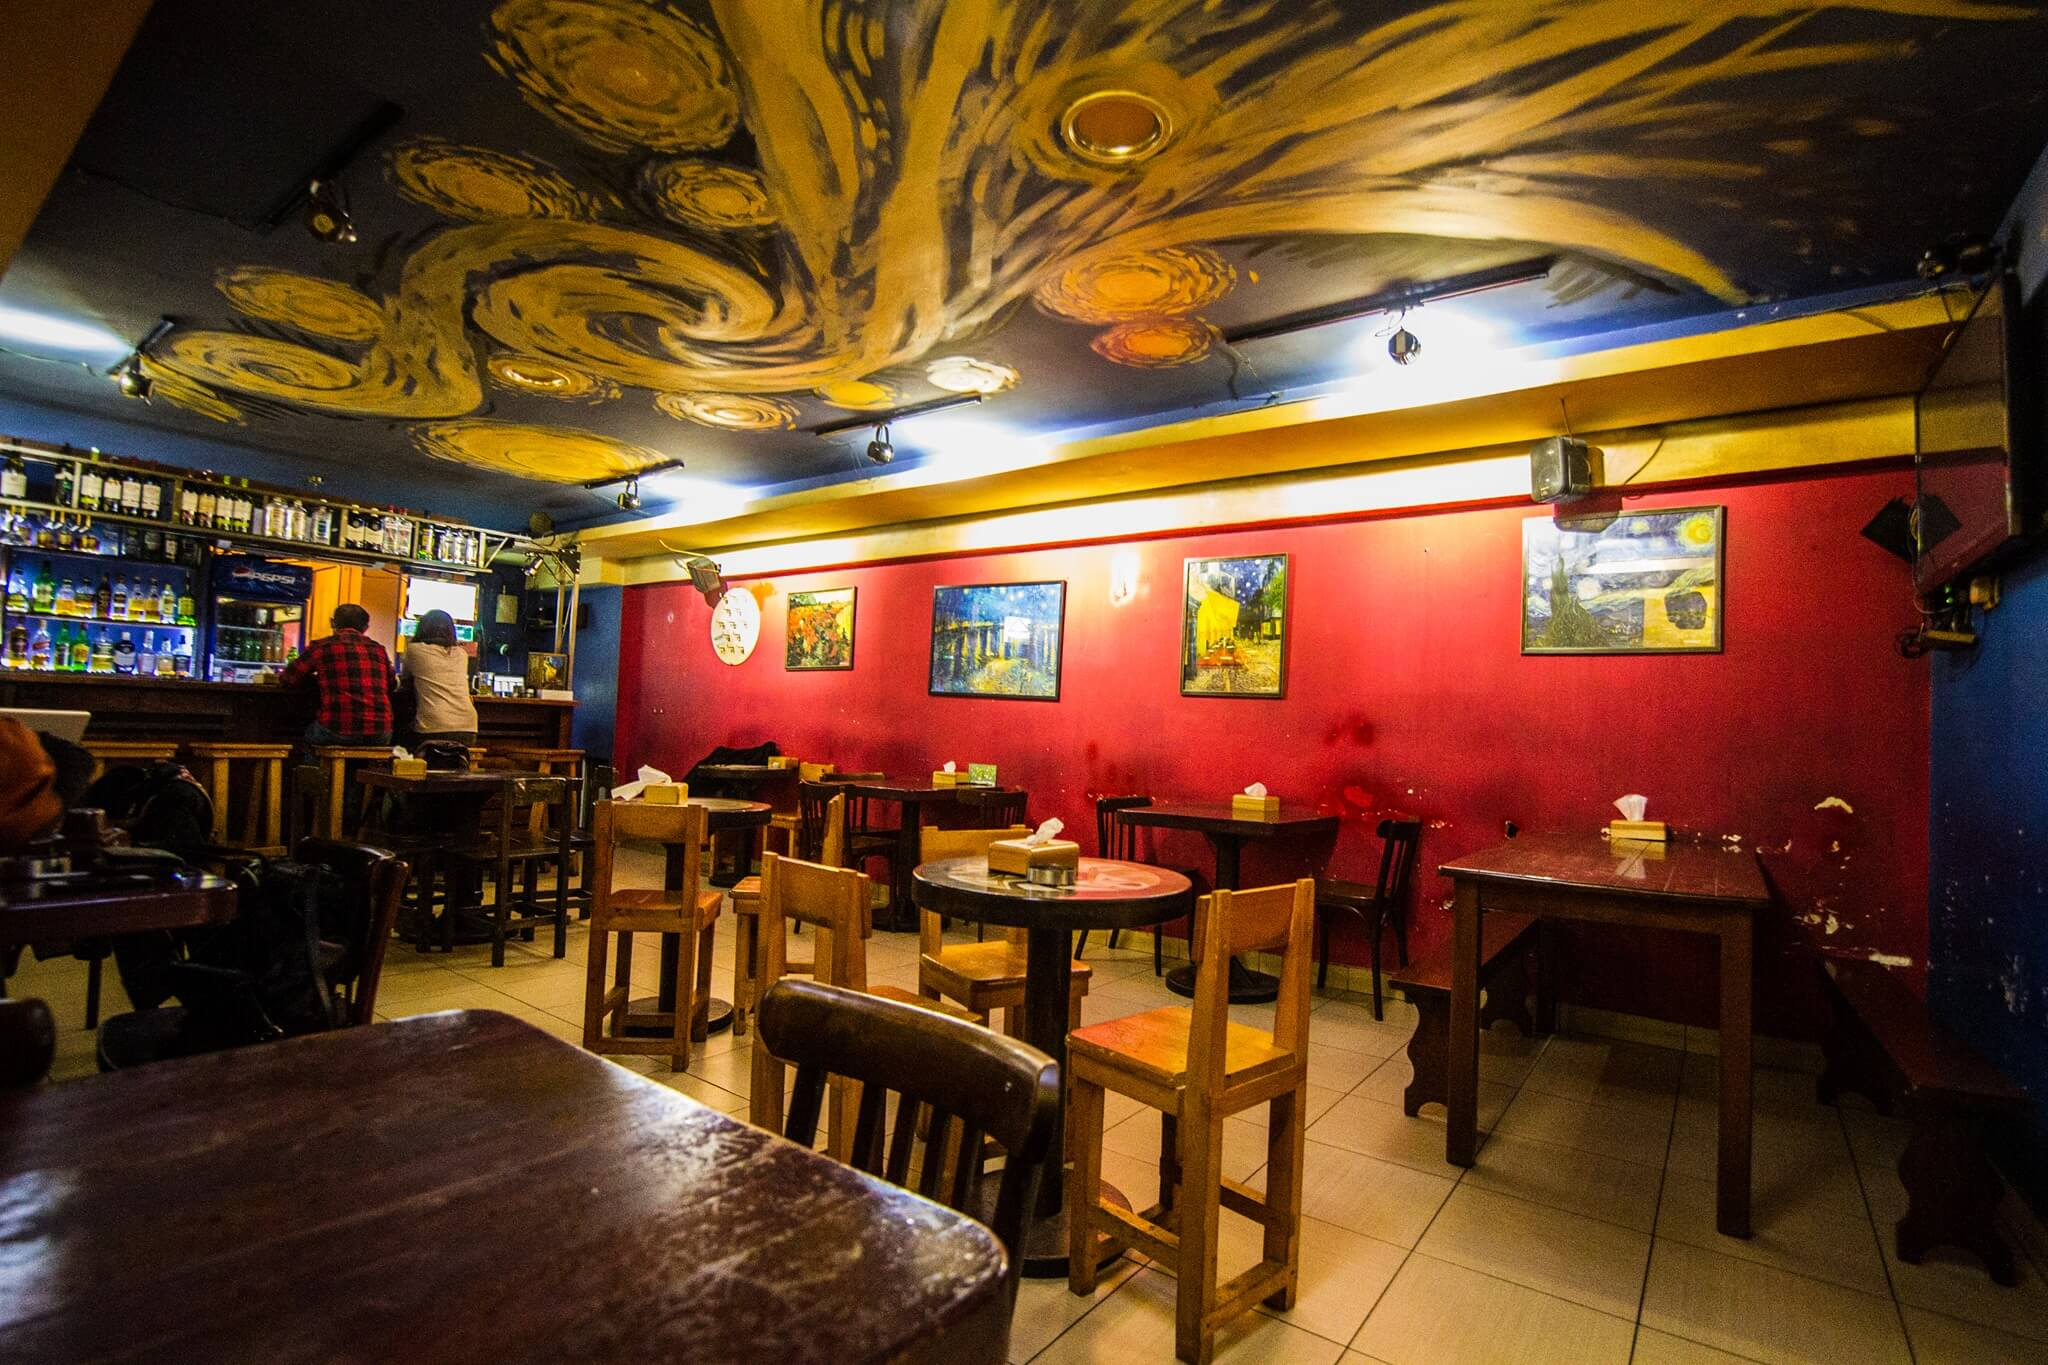 Top Art Places #7 Van Gogh Art Cafe